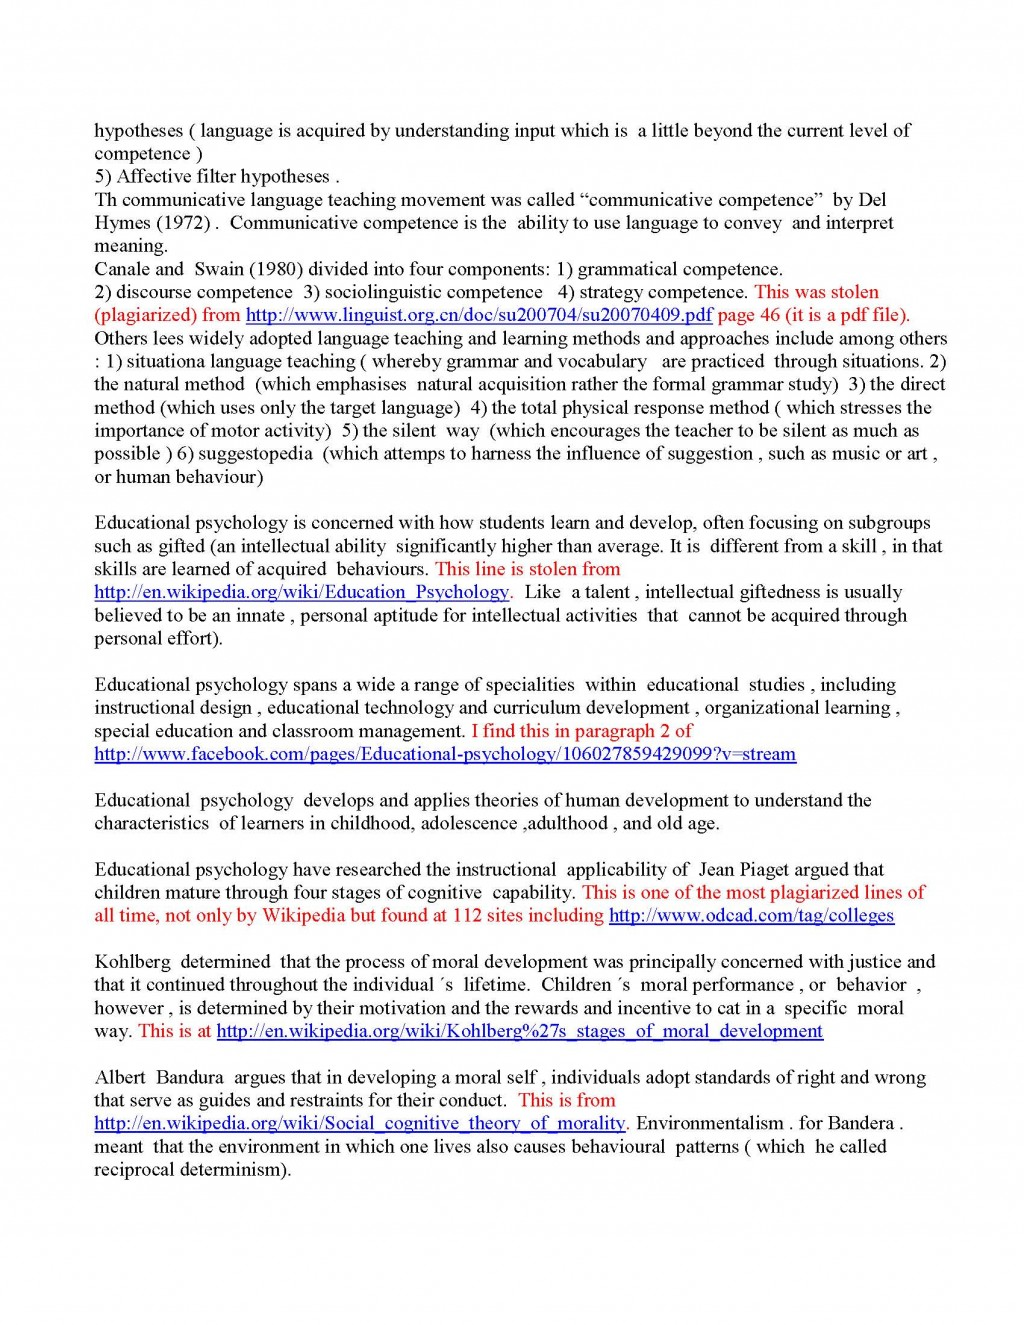 028 Initial Essay Read And Graded Page 2 Checker Shocking Grammatical Free Online Best Grammar Large